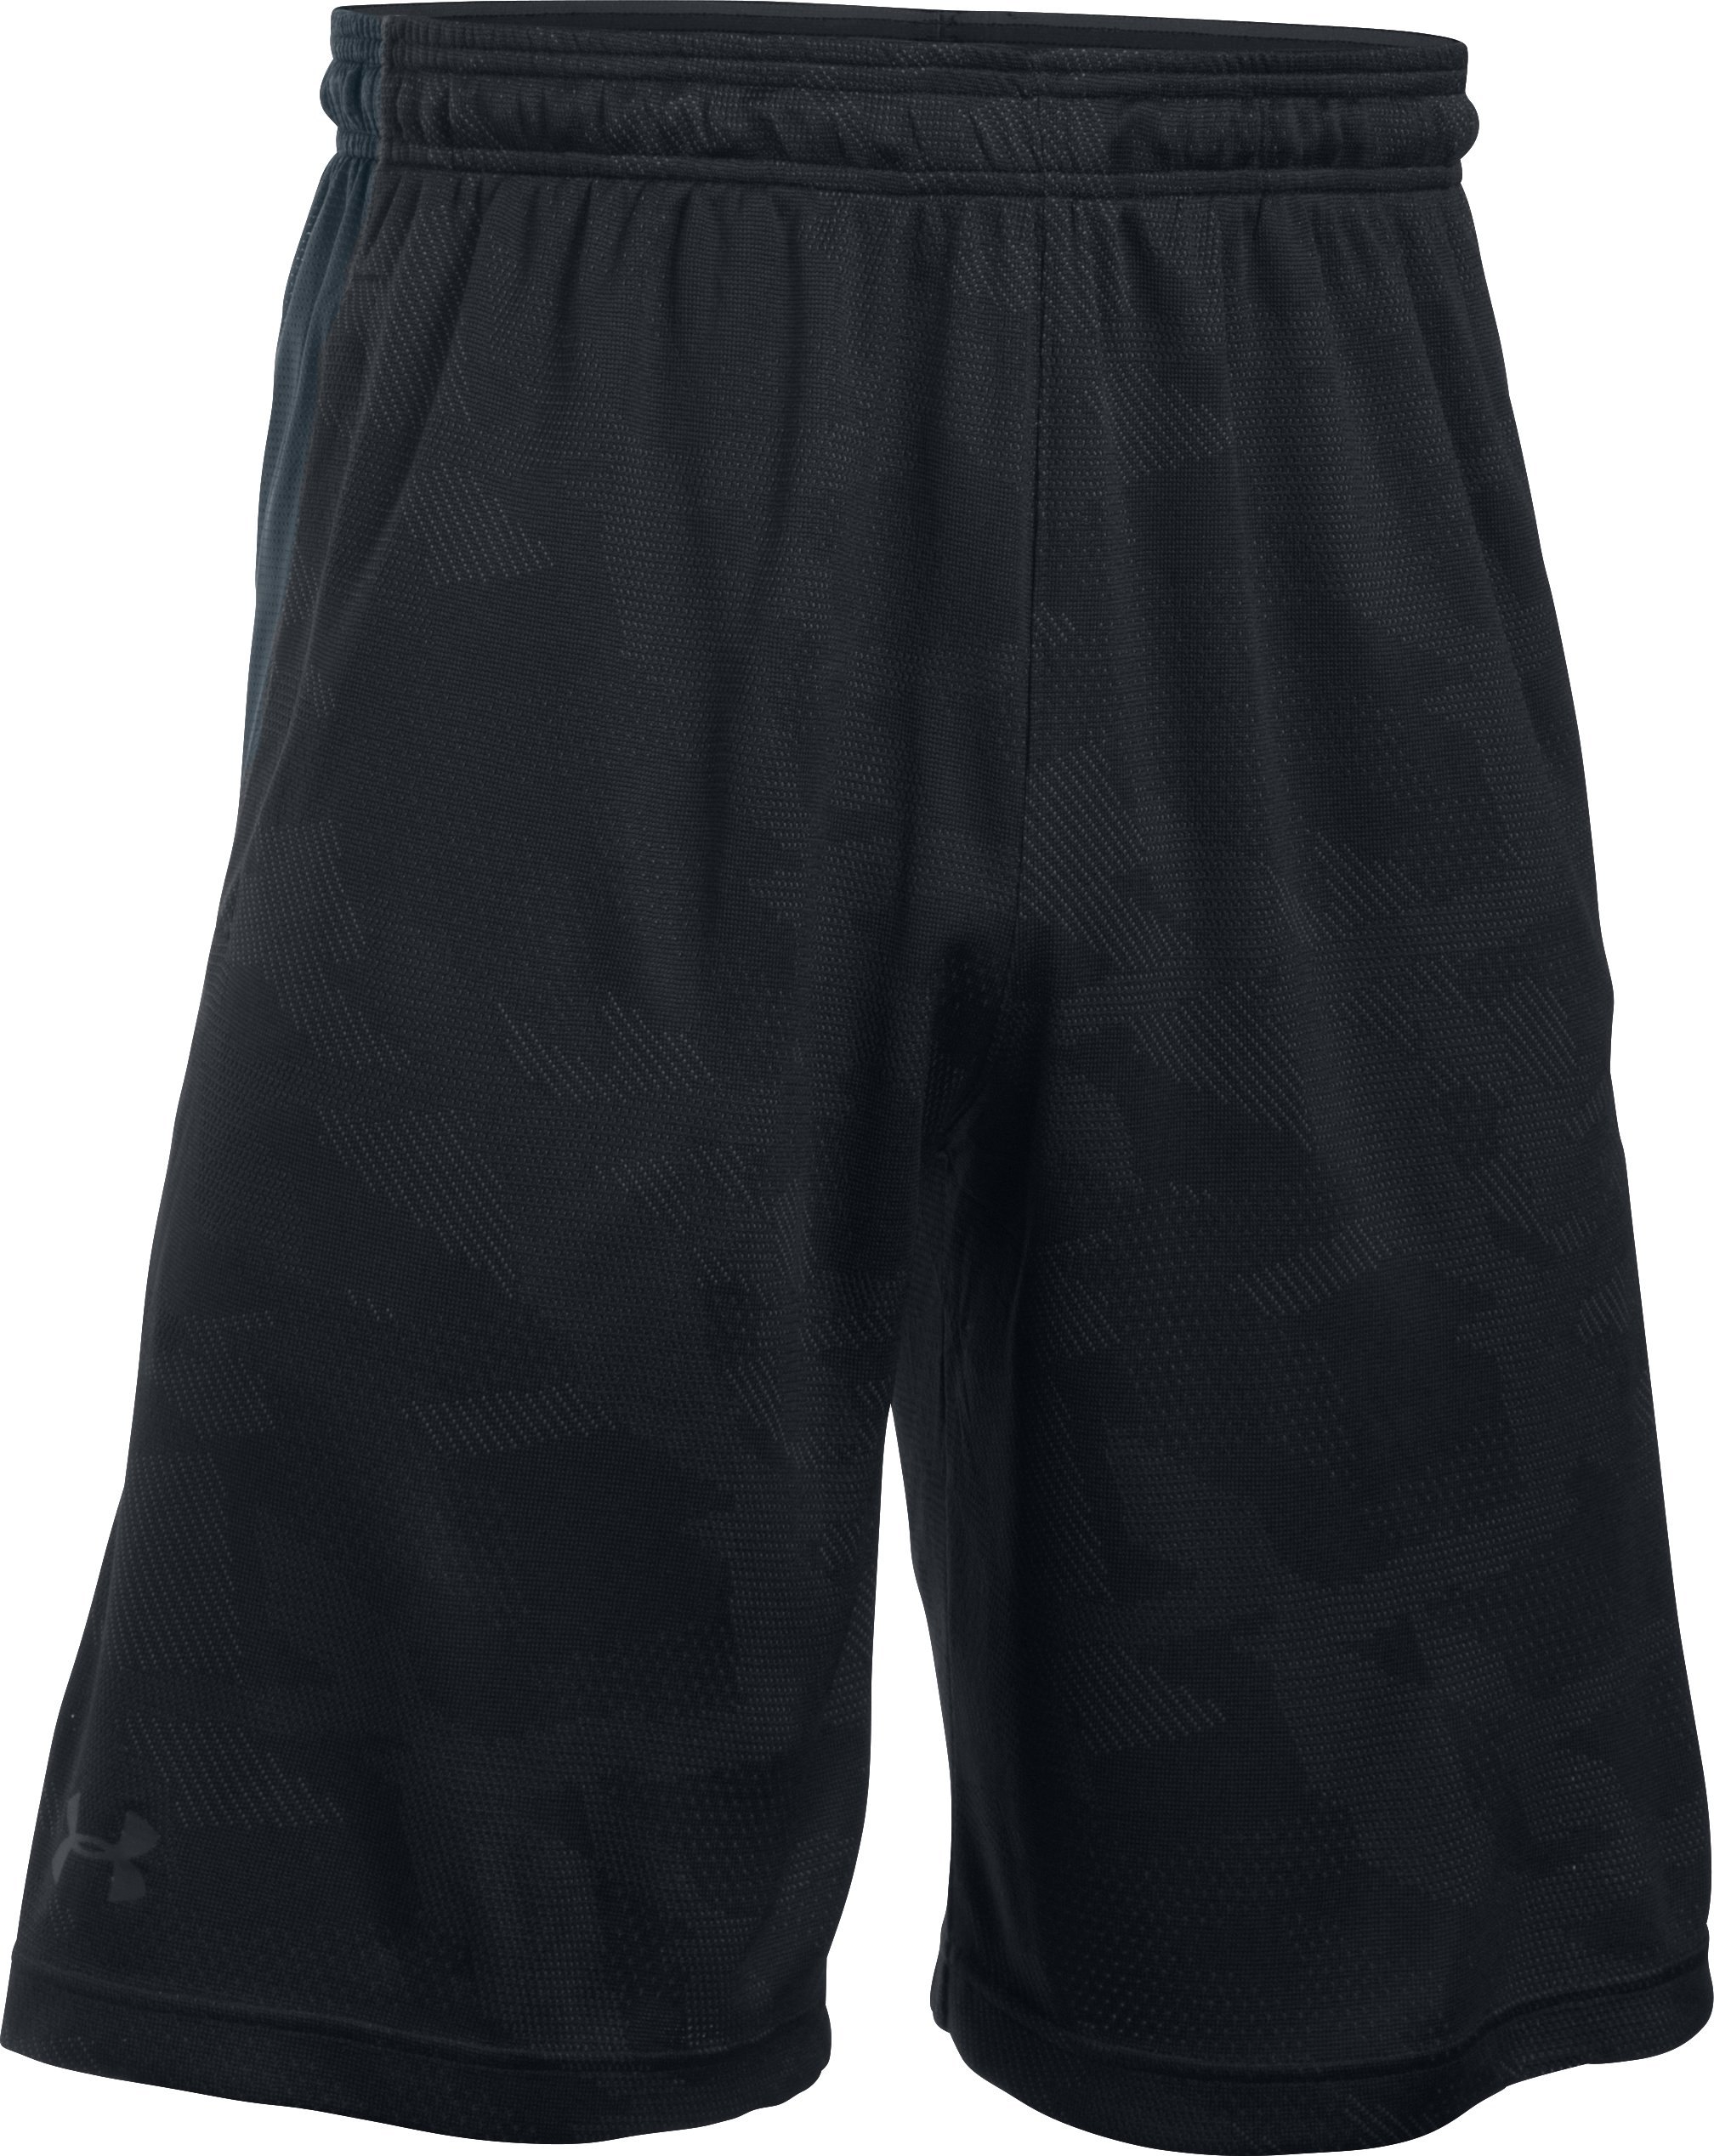 "Men's UA Raid Graphic 10"" Shorts, Black ,"